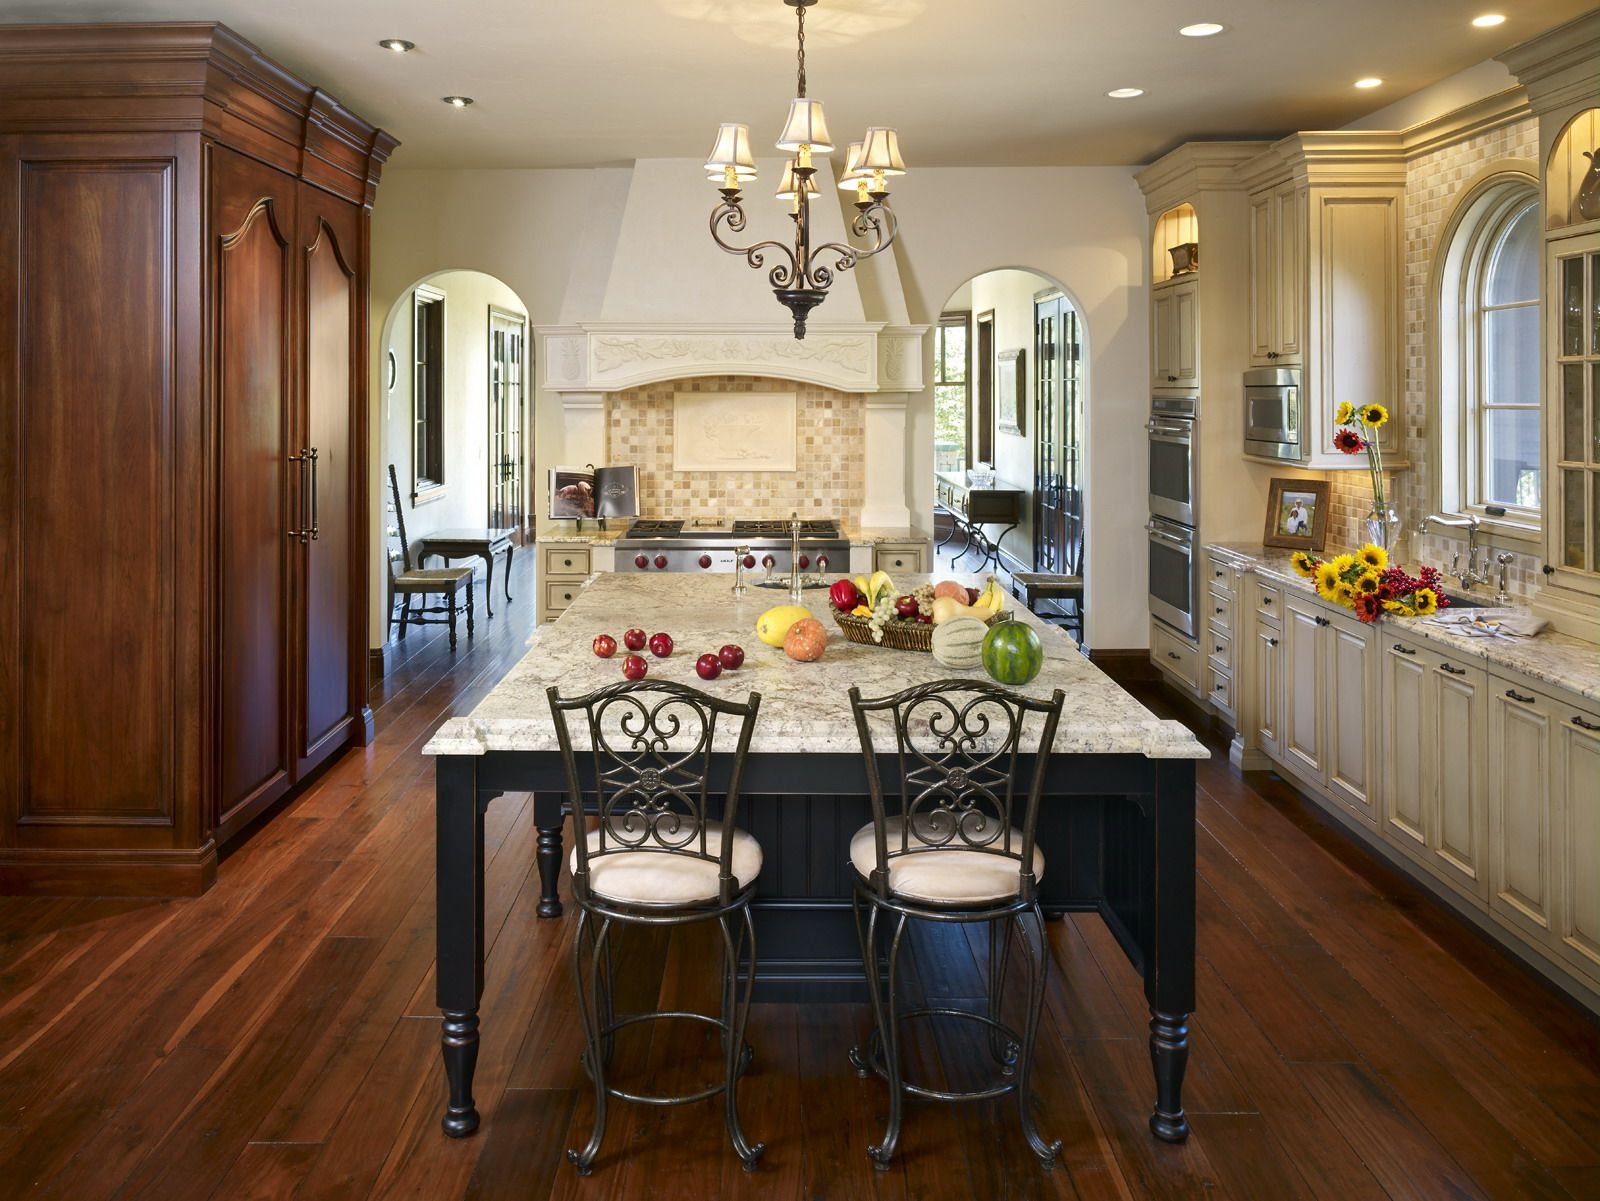 Refrigerator Armoire Is On The Left And Island That Looks Like A Table In The Middle The Island Granite Was Lea Kitchen Design Kitchen Decor Interior Design